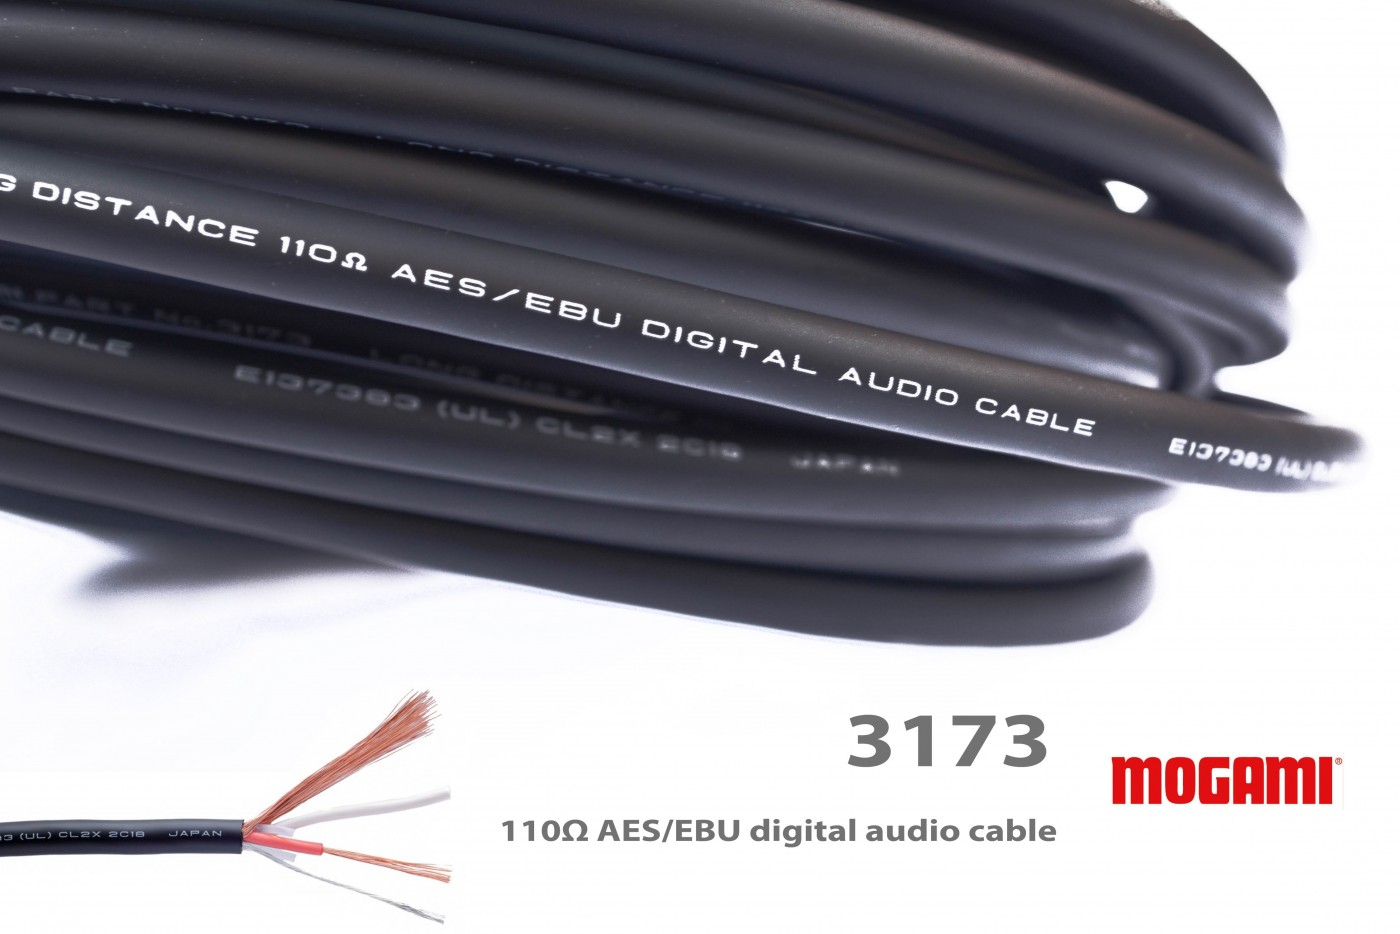 Mogami W3173 Cable (made in Japan) - ideal for long runs and XLR ...